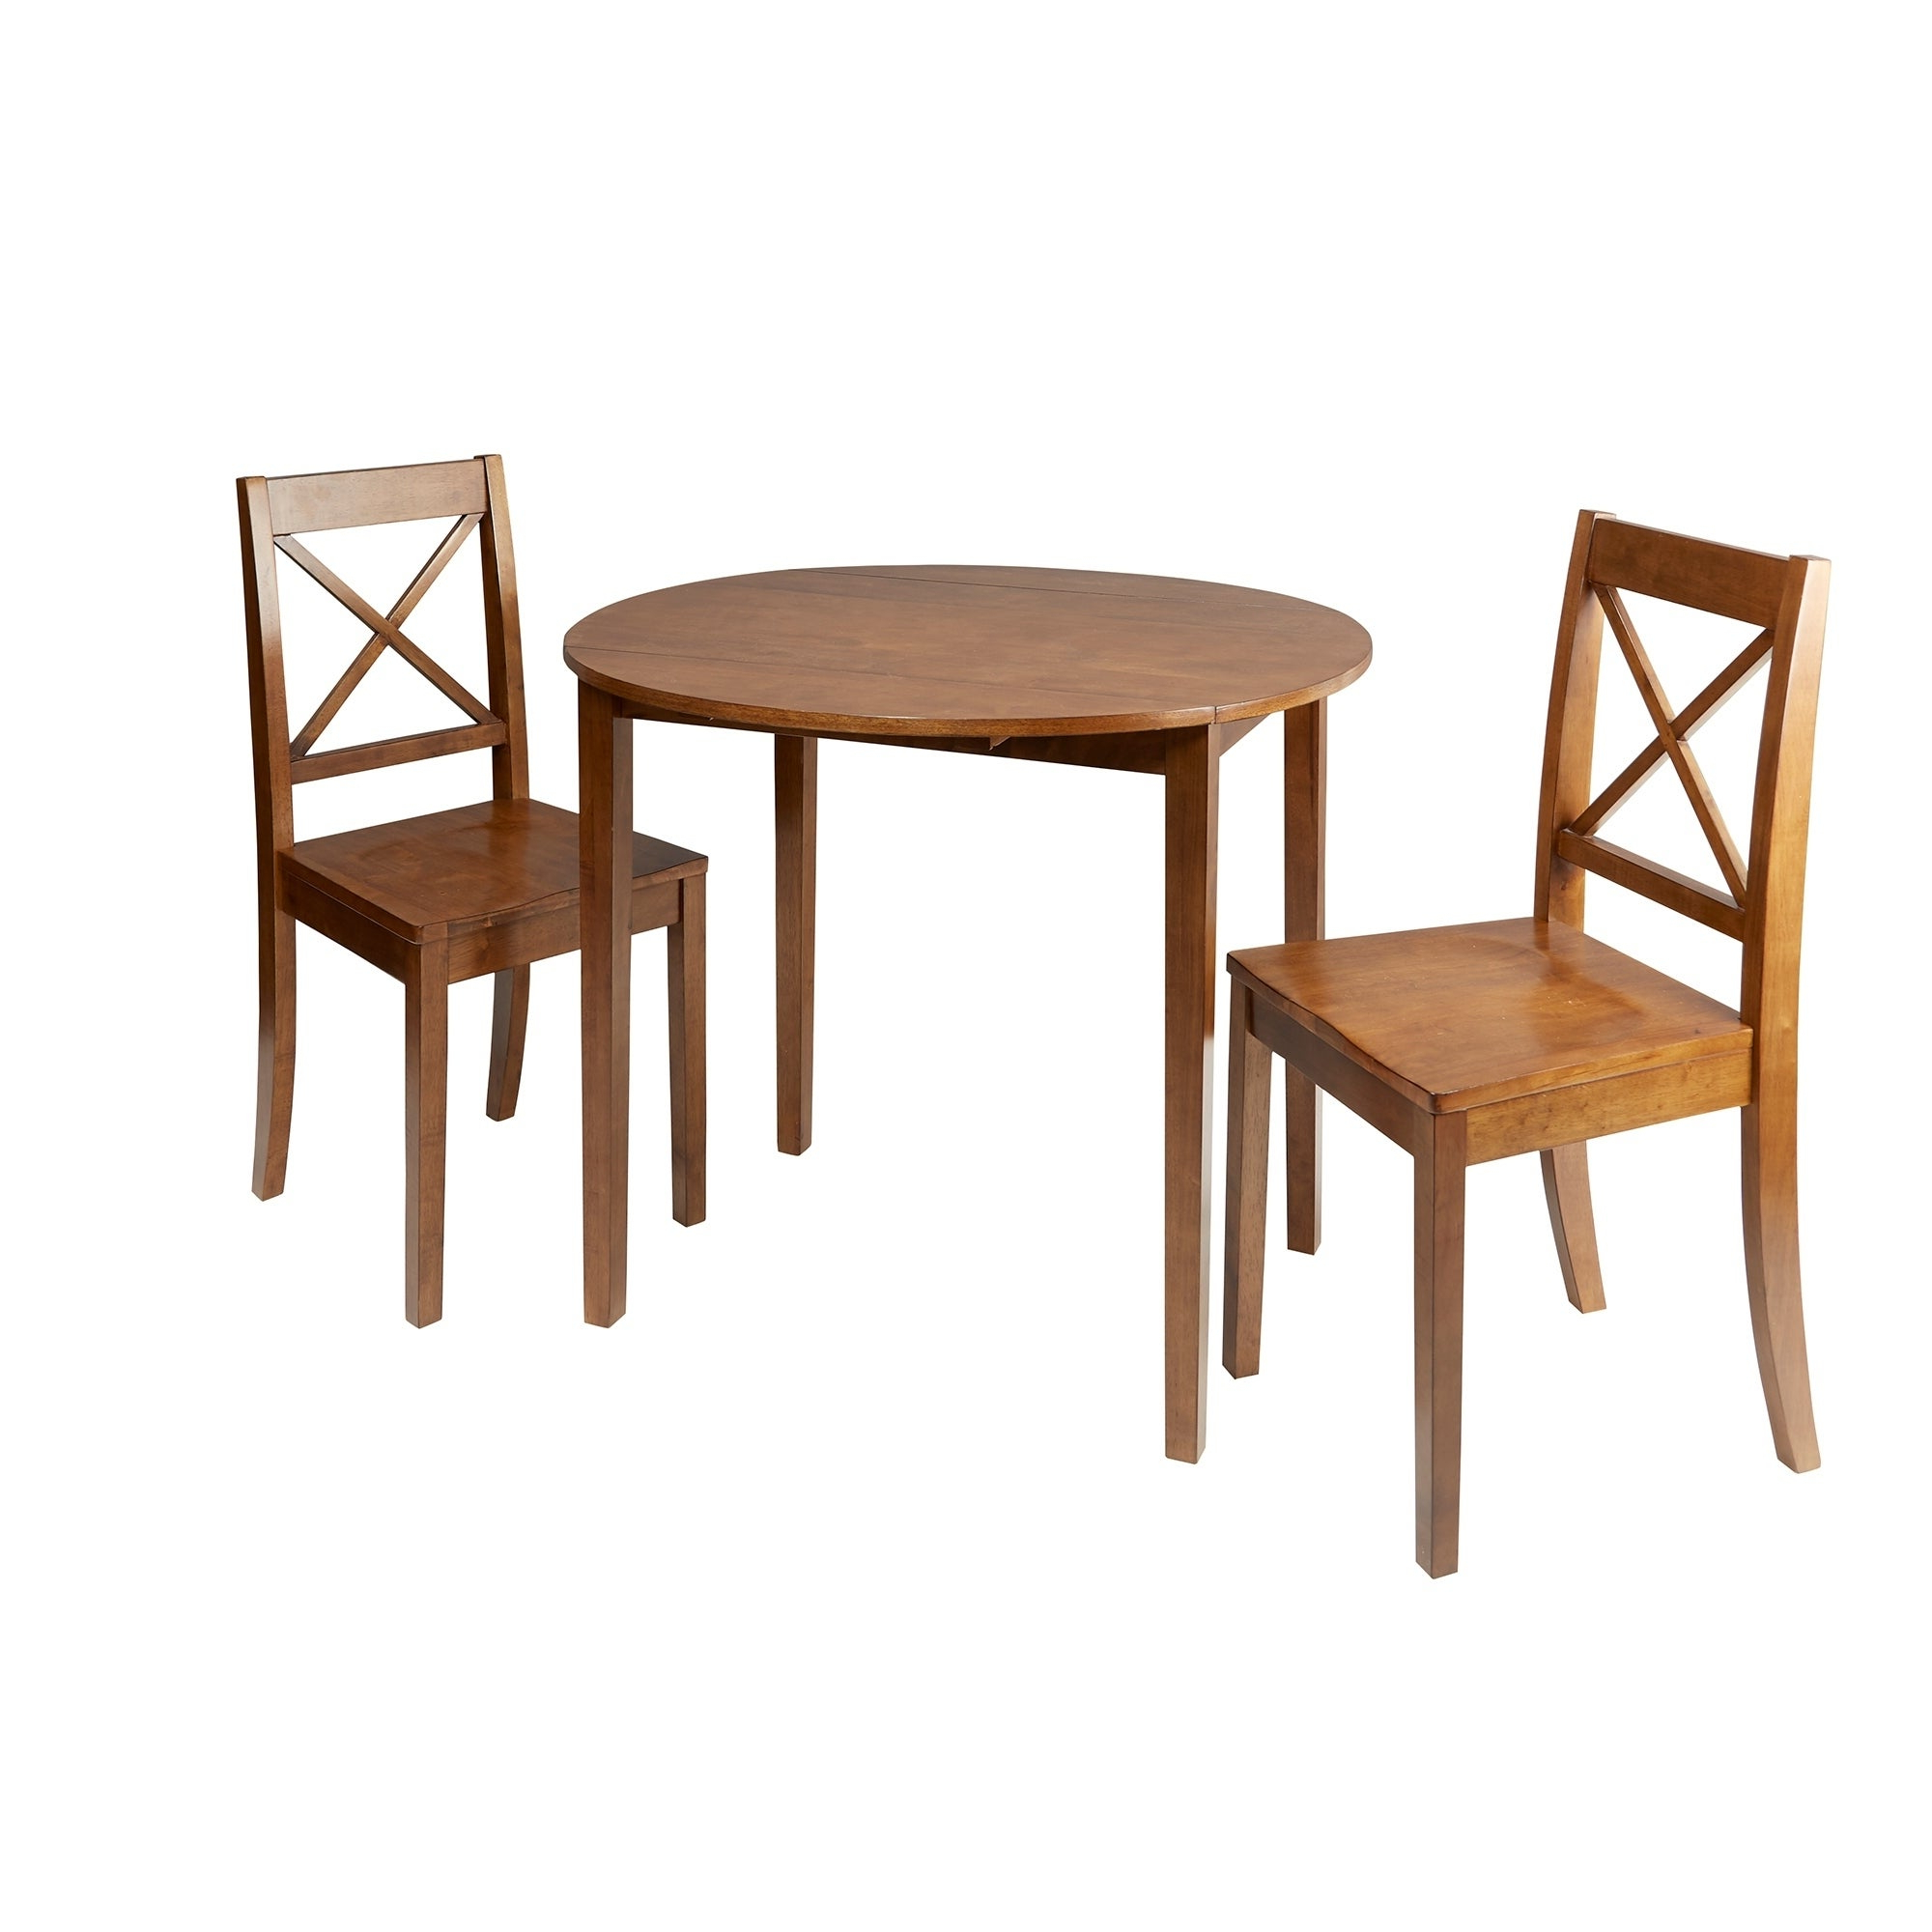 Most Recent Murphy 3 Piece Drop Leaf Dining Set Throughout Transitional Drop Leaf Casual Dining Tables (View 13 of 25)